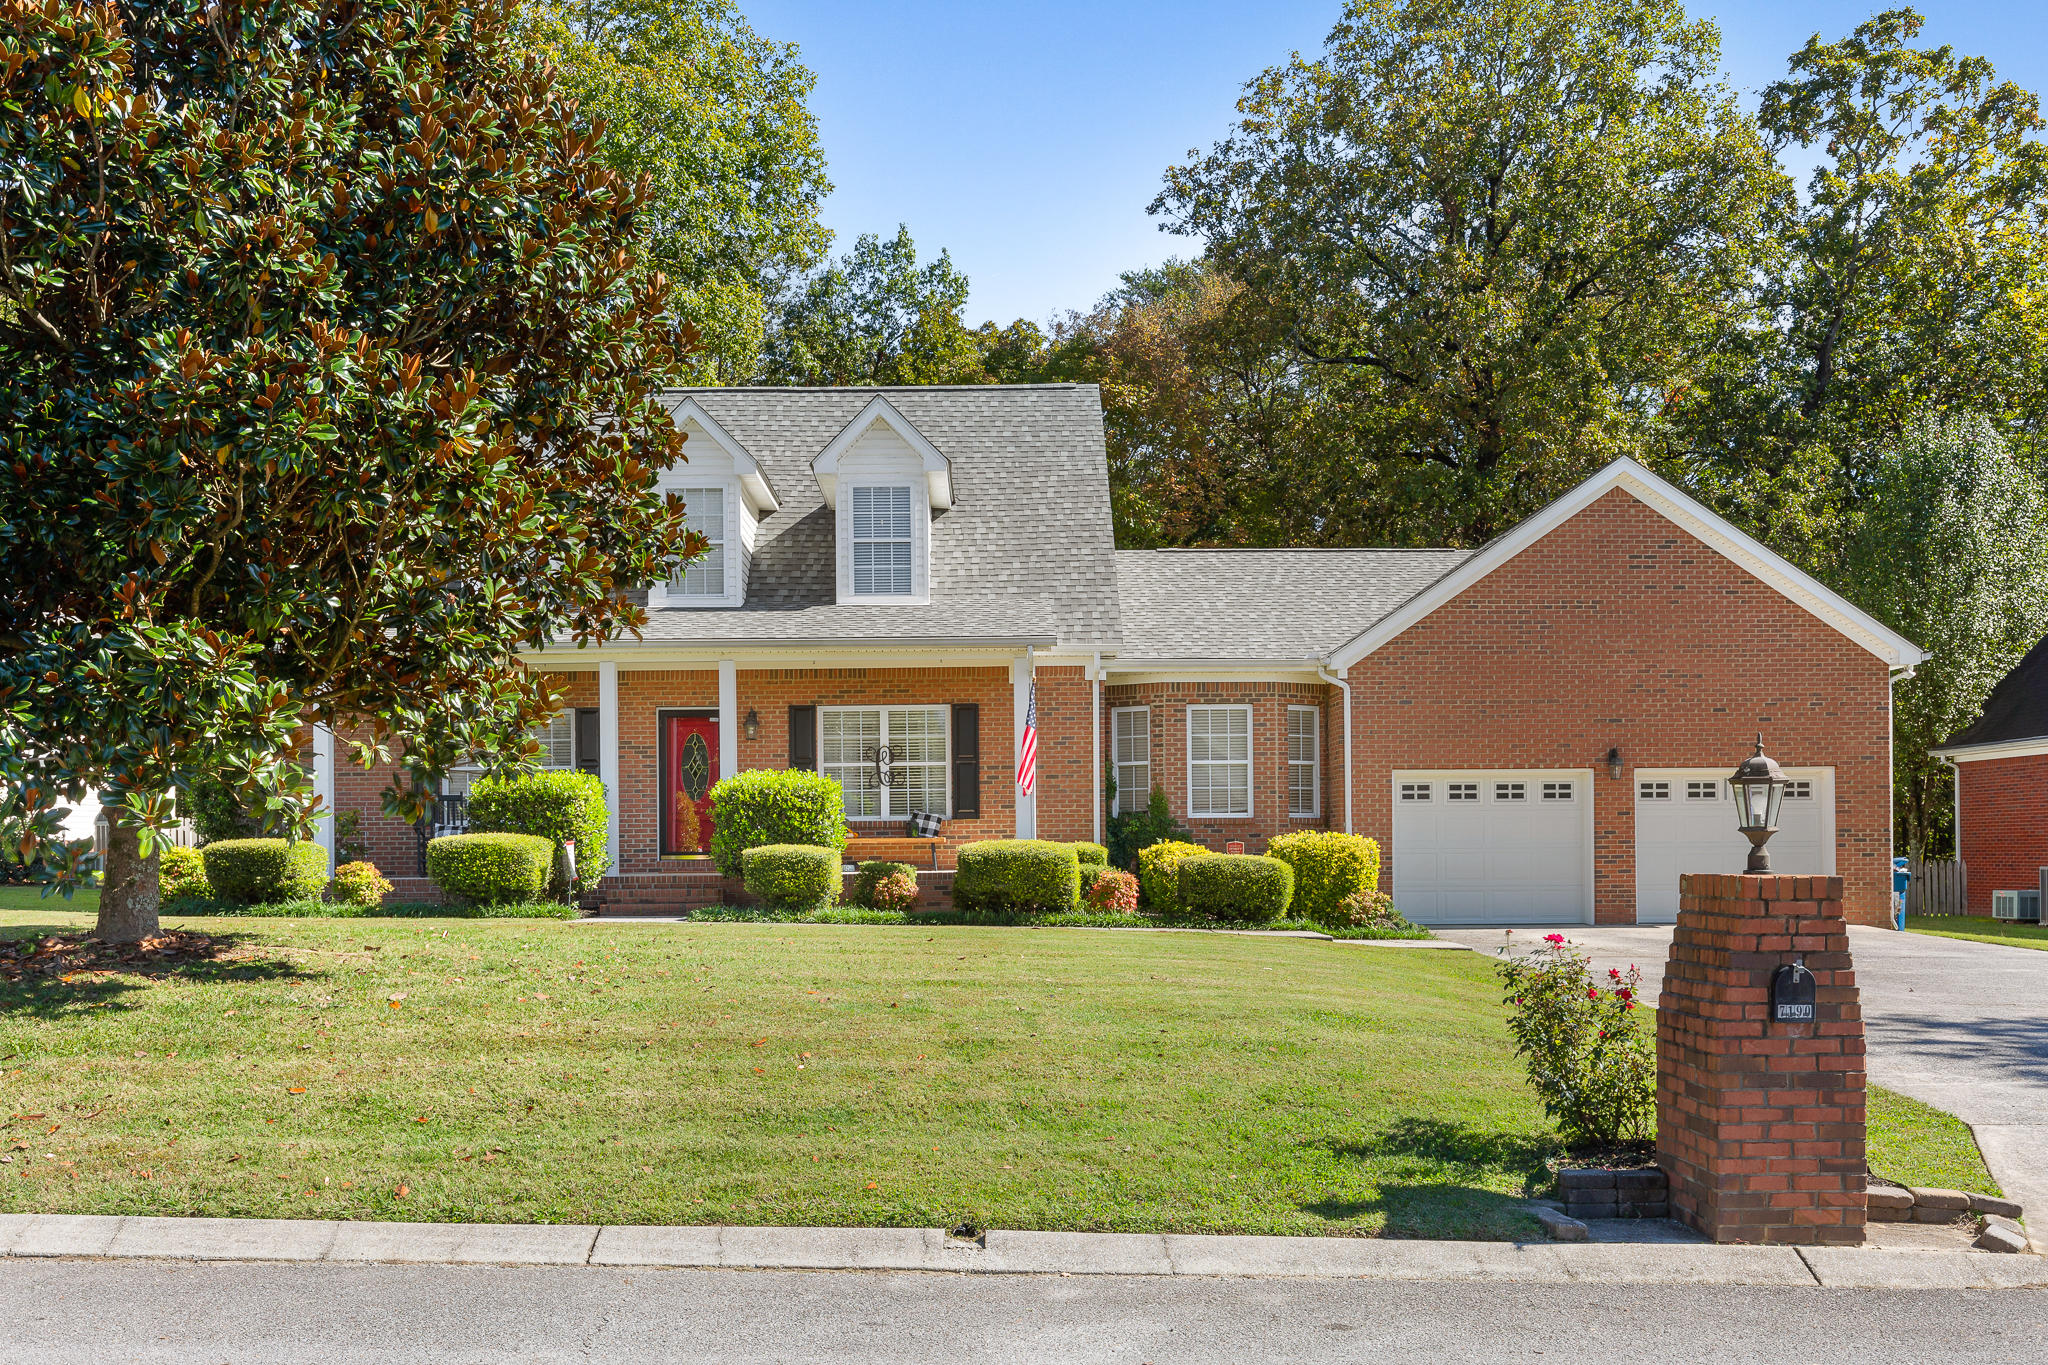 7190 Goldenrod Ct, Ooltewah, TN 37363